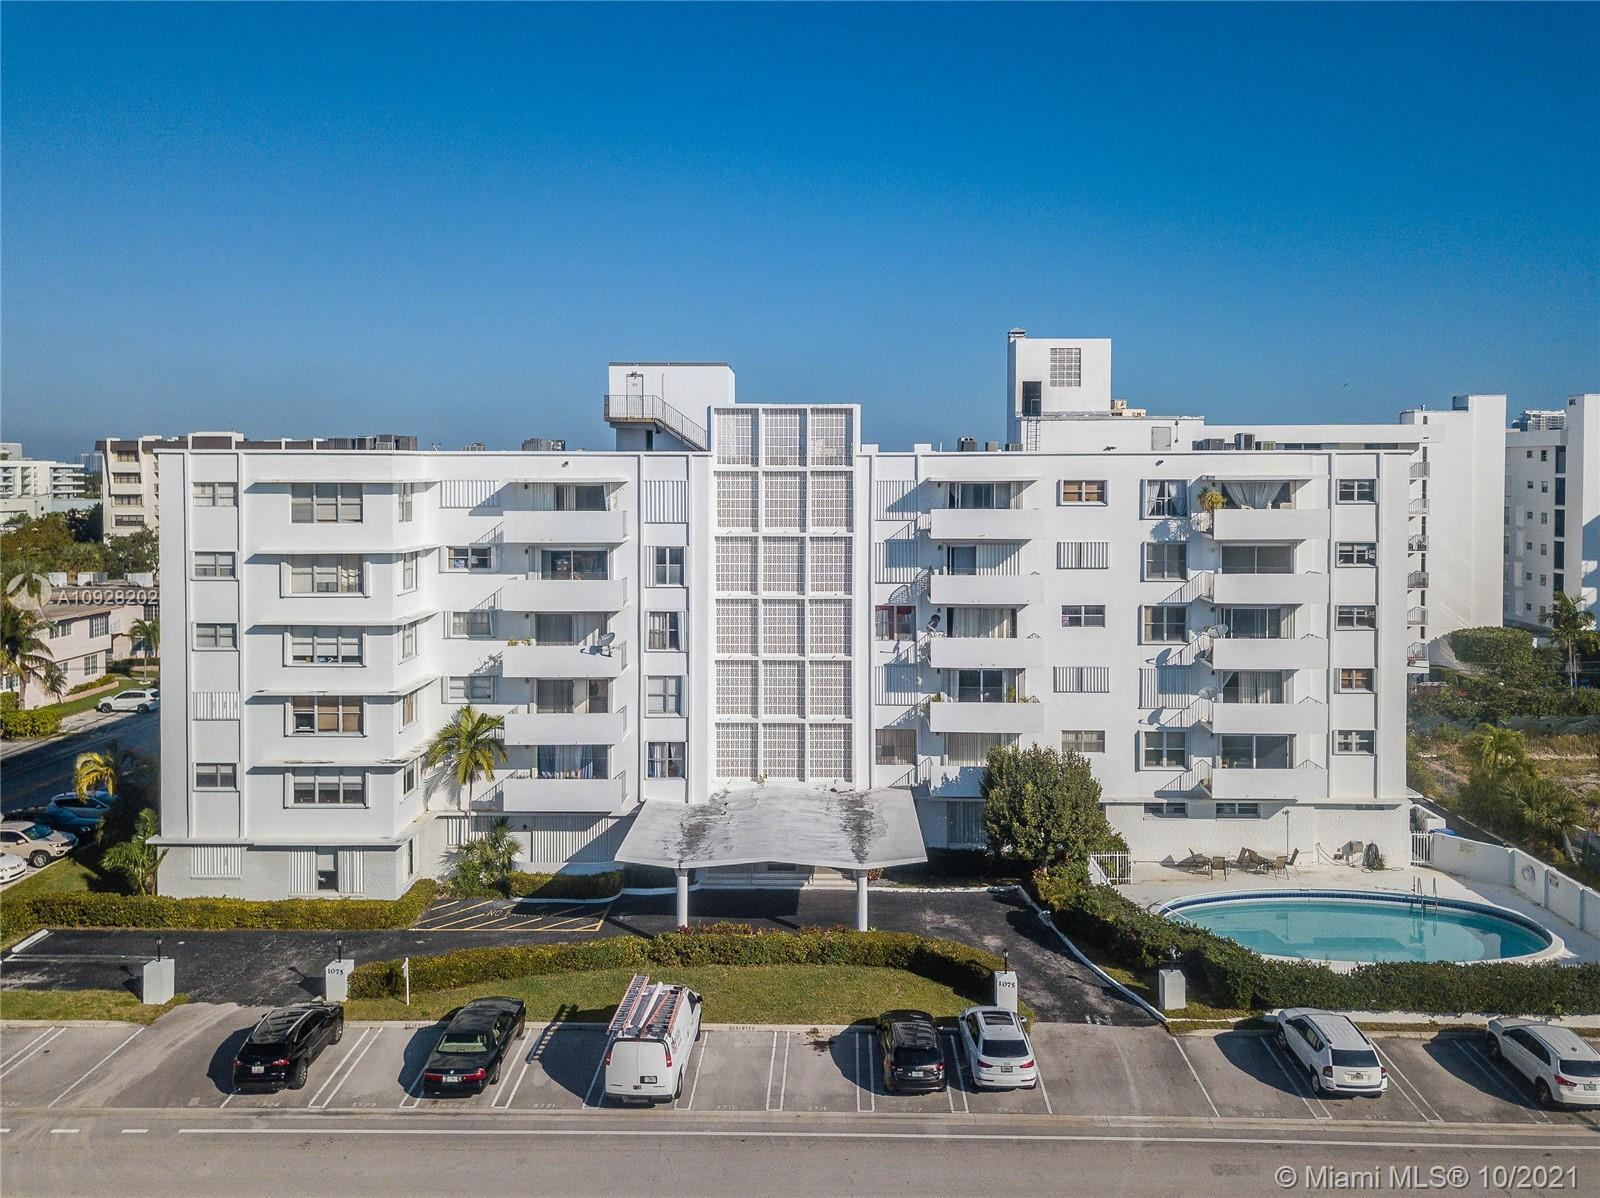 Approved Short Sale!!! CASH ONLY. Spacious 1 bedroom 2 full baths condo with nearly 1300 sq ft of living space in the heart of Bay Harbor Islands. Features include an updated kitchen with stainless steel appliances, an abundance of closets, storage space and open terrace overlooking the city and swimming pool. Located within walking distance to top rated K-8 school and just a short drive to Bal Harbour Shops, houses of worship and pristine beaches. Well maintained and pet friendly building (up to 2 dogs under 20 lbs). Sale is subject to seller's lender's approval.